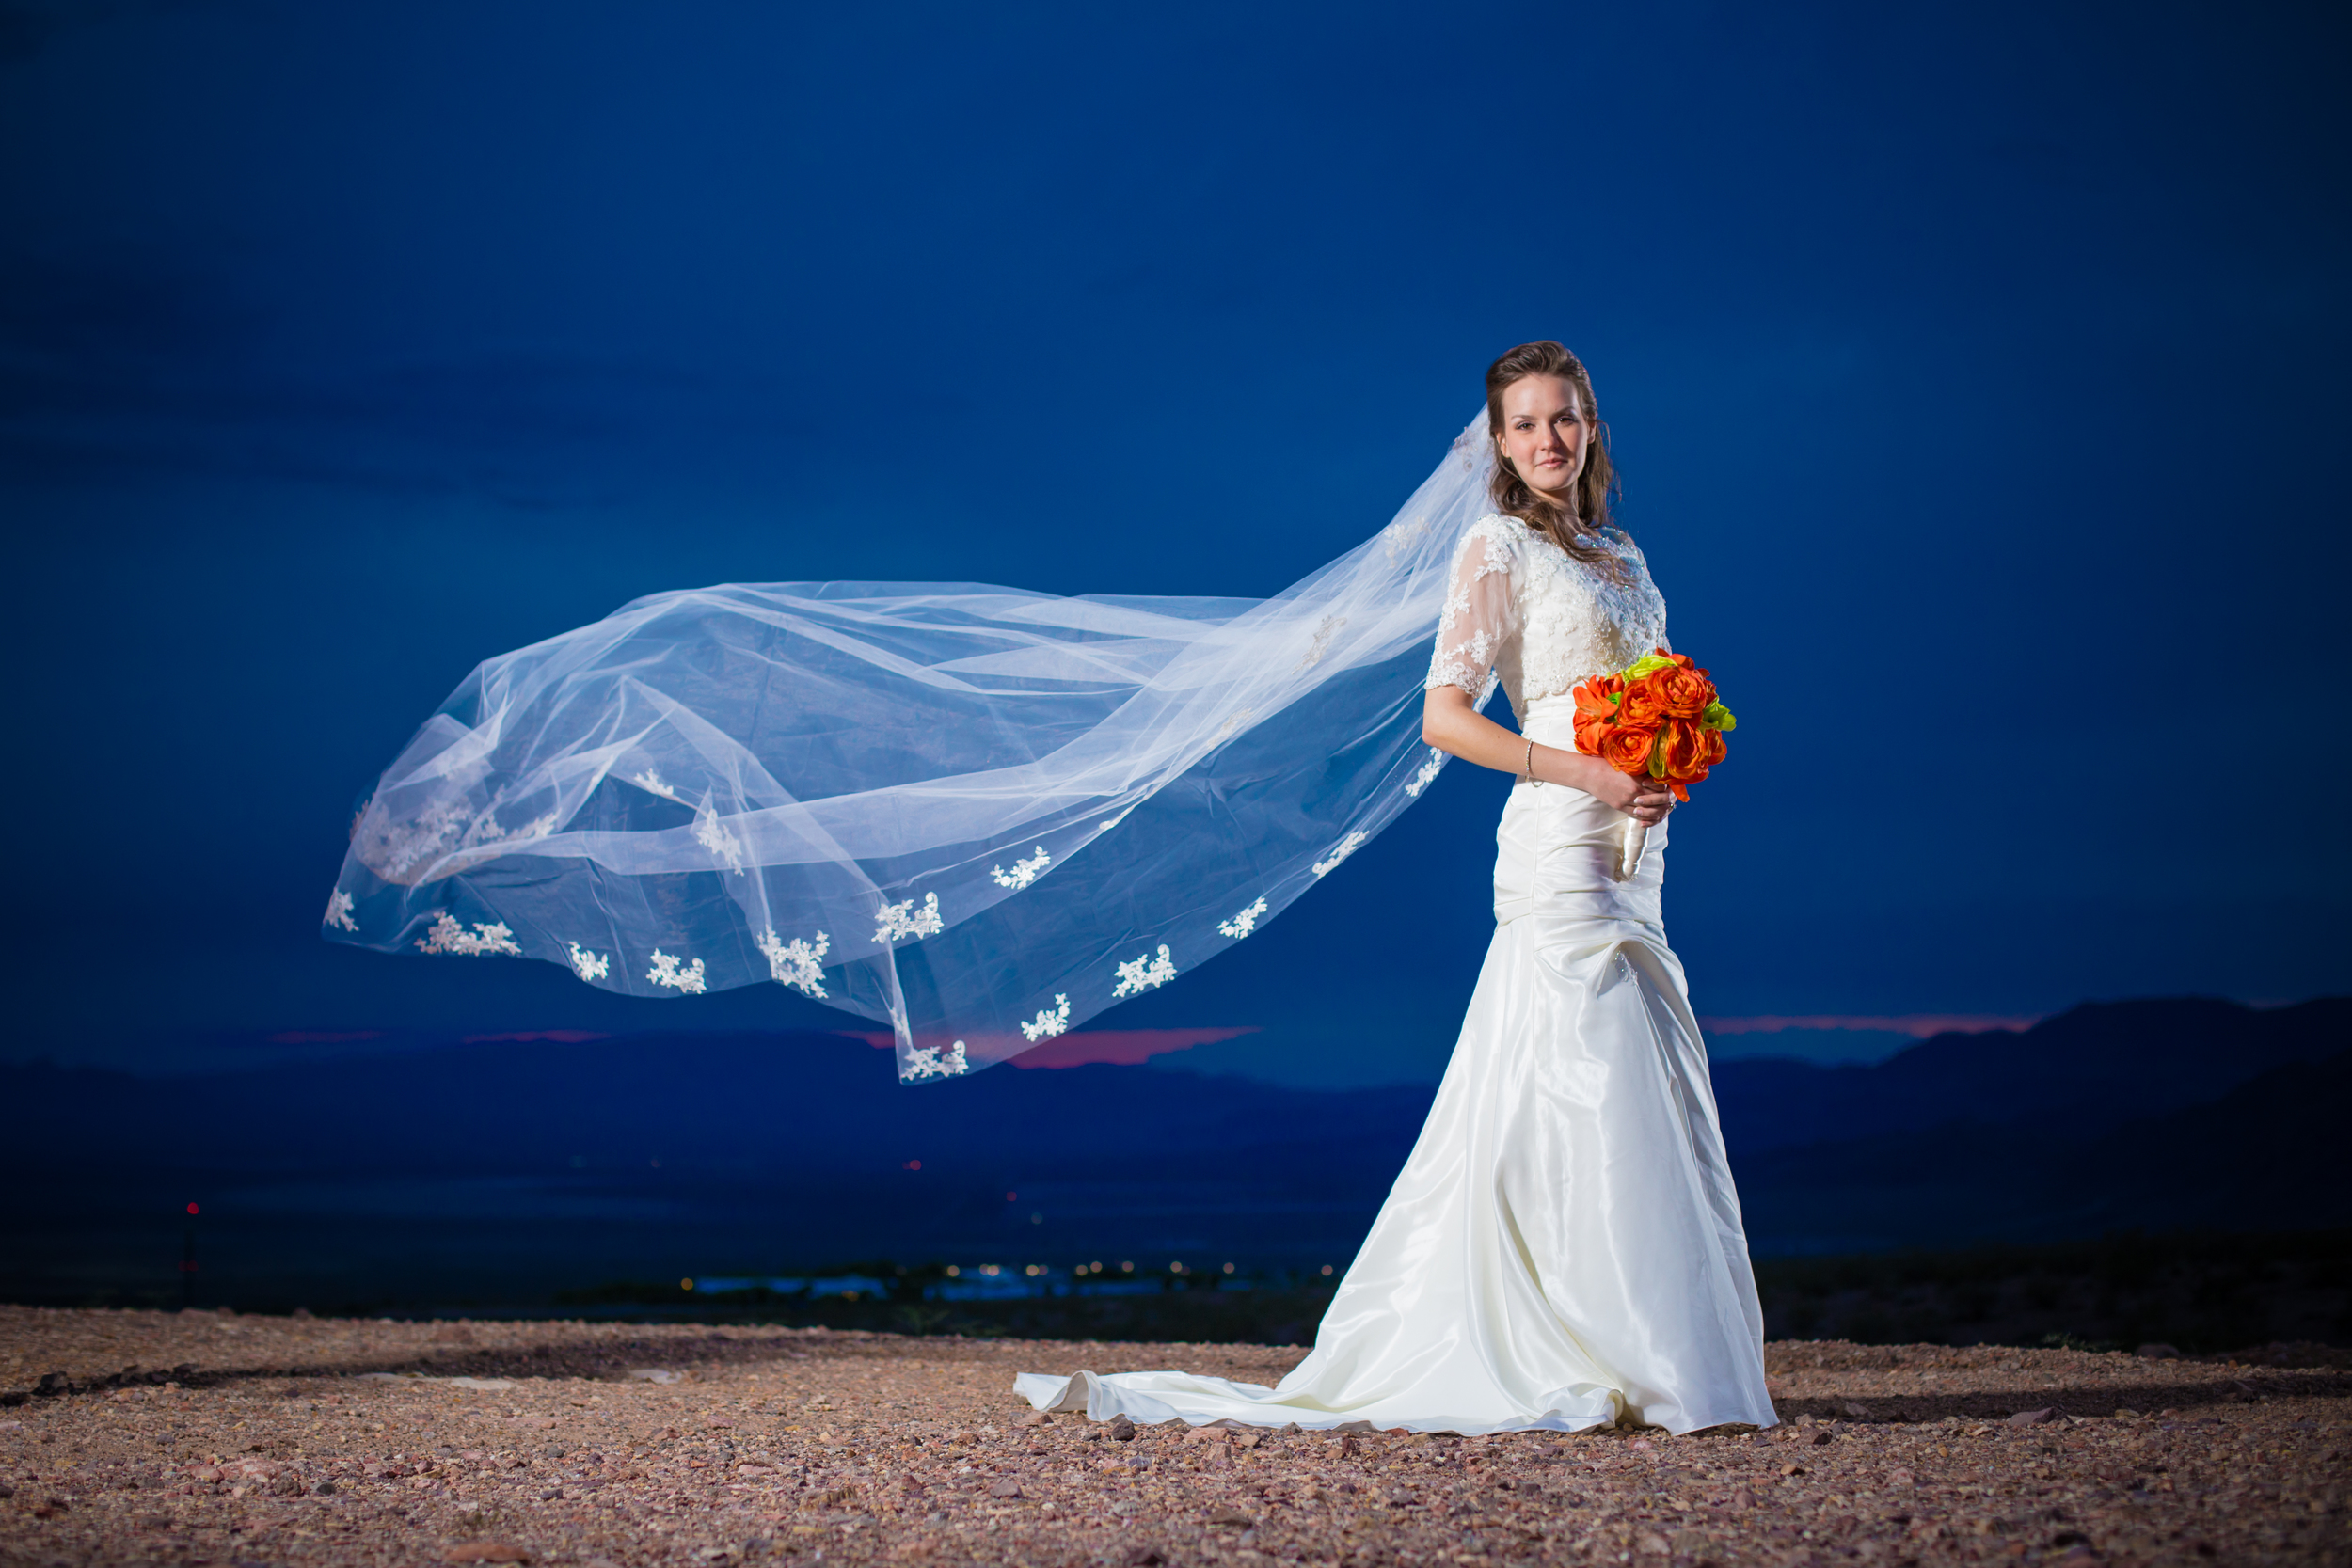 This photo took a few tries but I think we nailed it. I love the long veil just floating in the air.